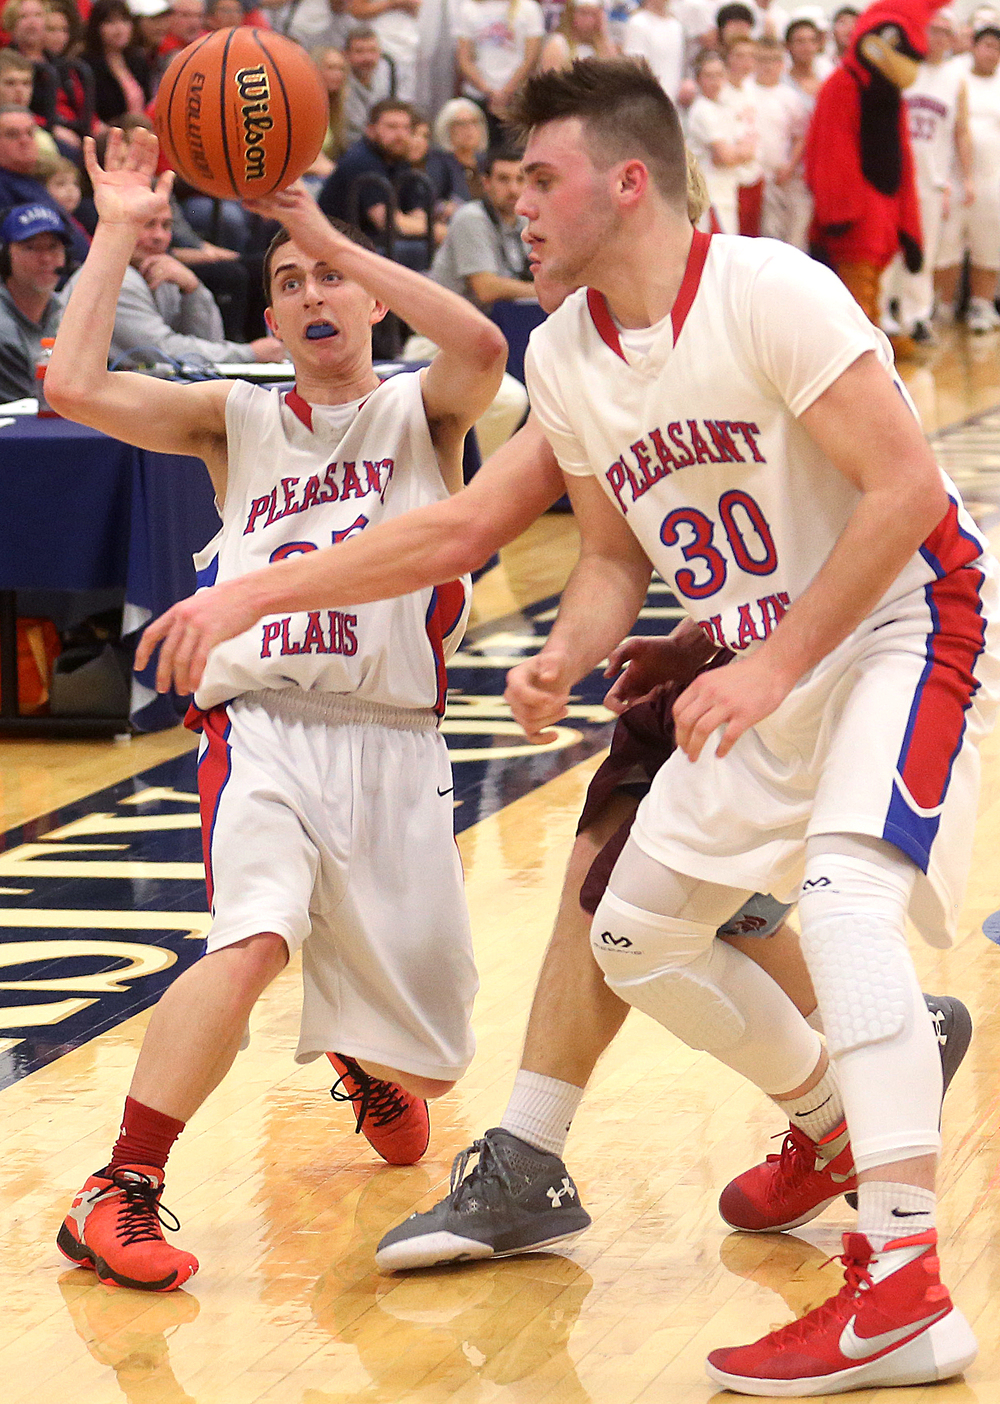 Pleasant Plains player Isaac Collins tries to get off a pass during the first half. David Spencer/The State Journal Register